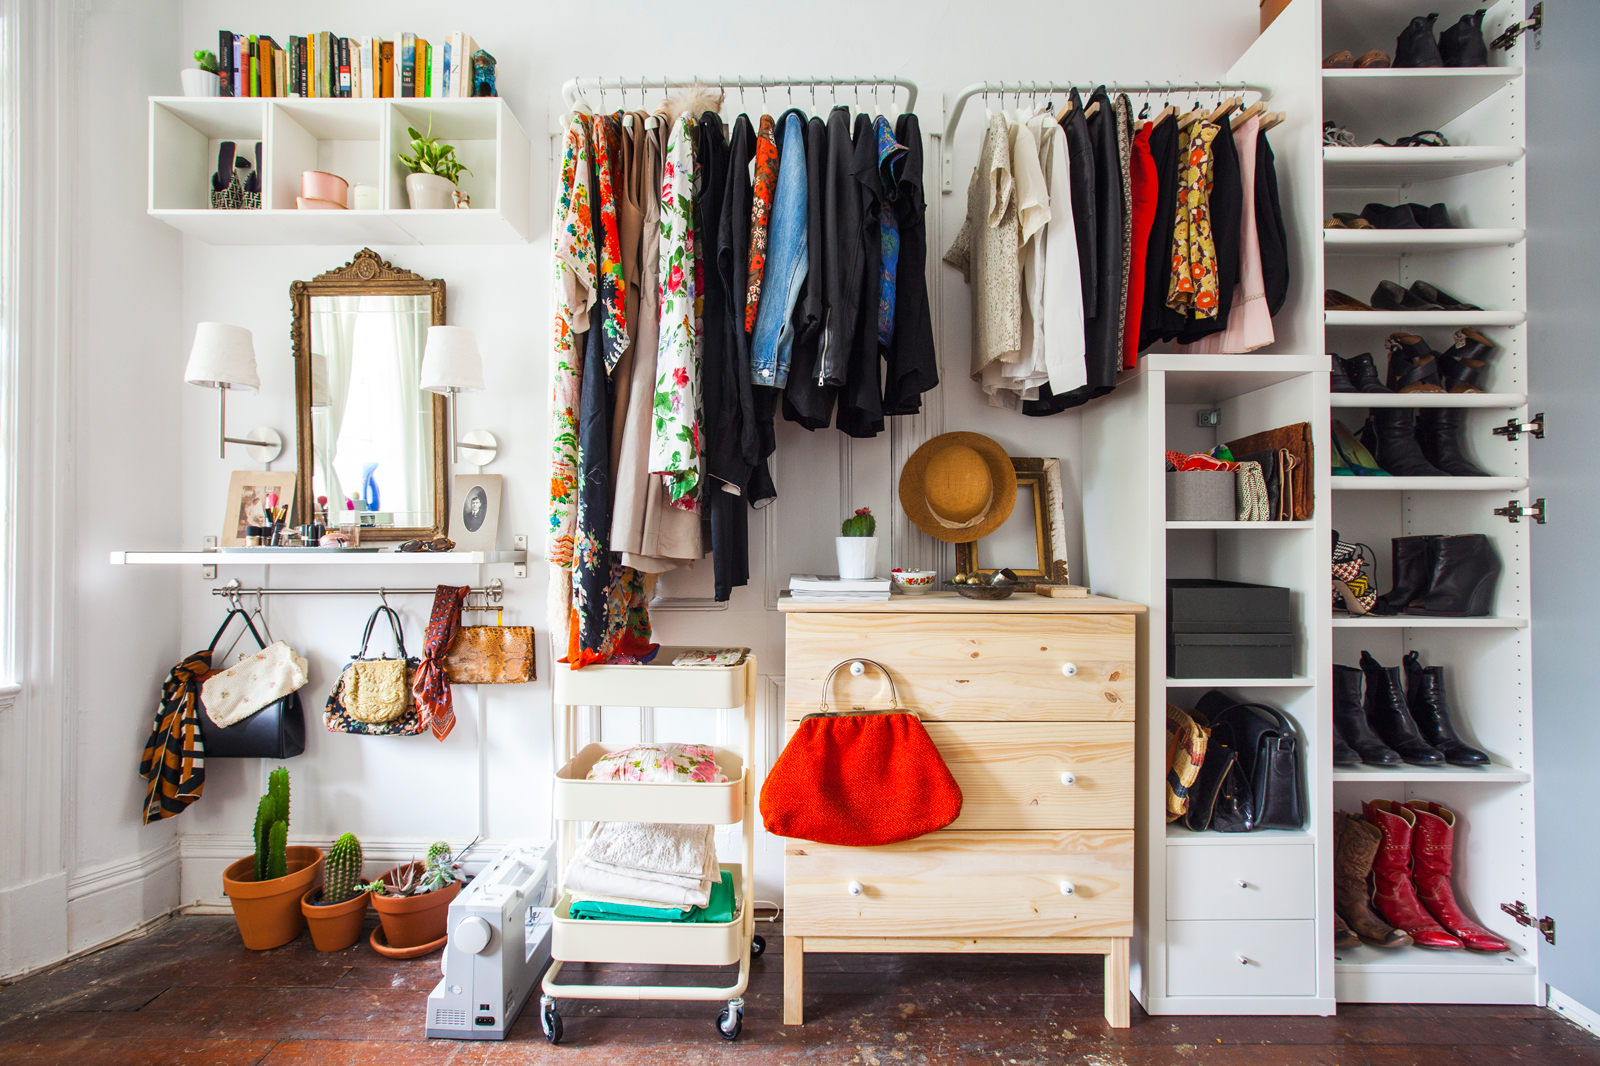 A DIY closet made with IKEA hacks.